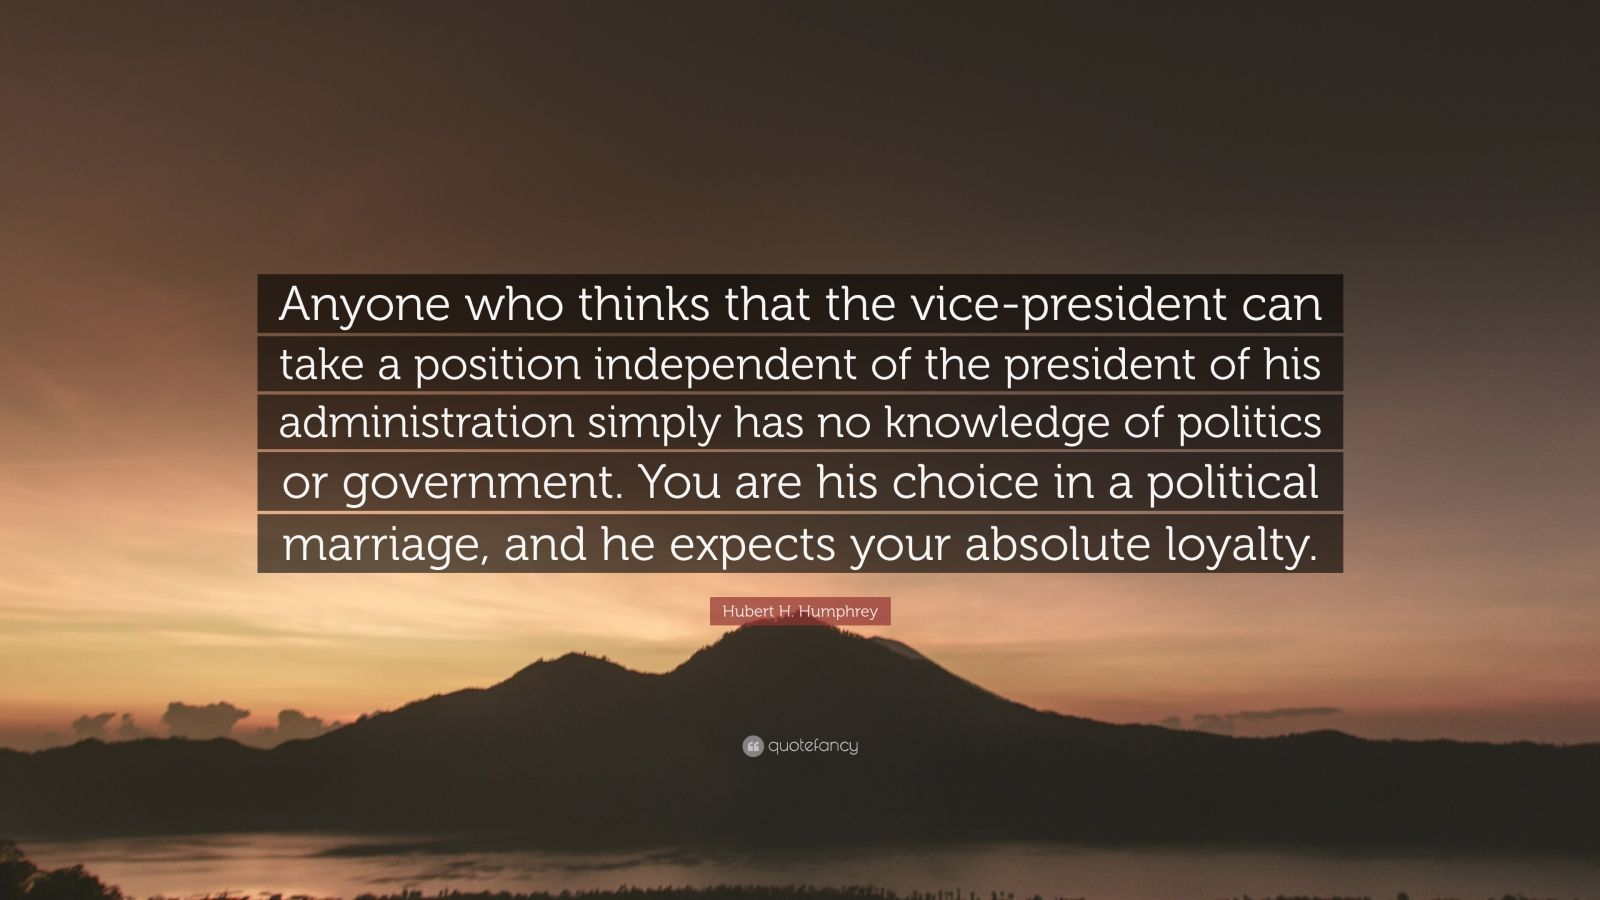 """Hubert H. Humphrey Quote: """"Anyone who thinks that the vice-president can take a position independent of the president of his administration simply has no knowledge of politics or government. You are his choice in a political marriage, and he expects your absolute loyalty."""""""